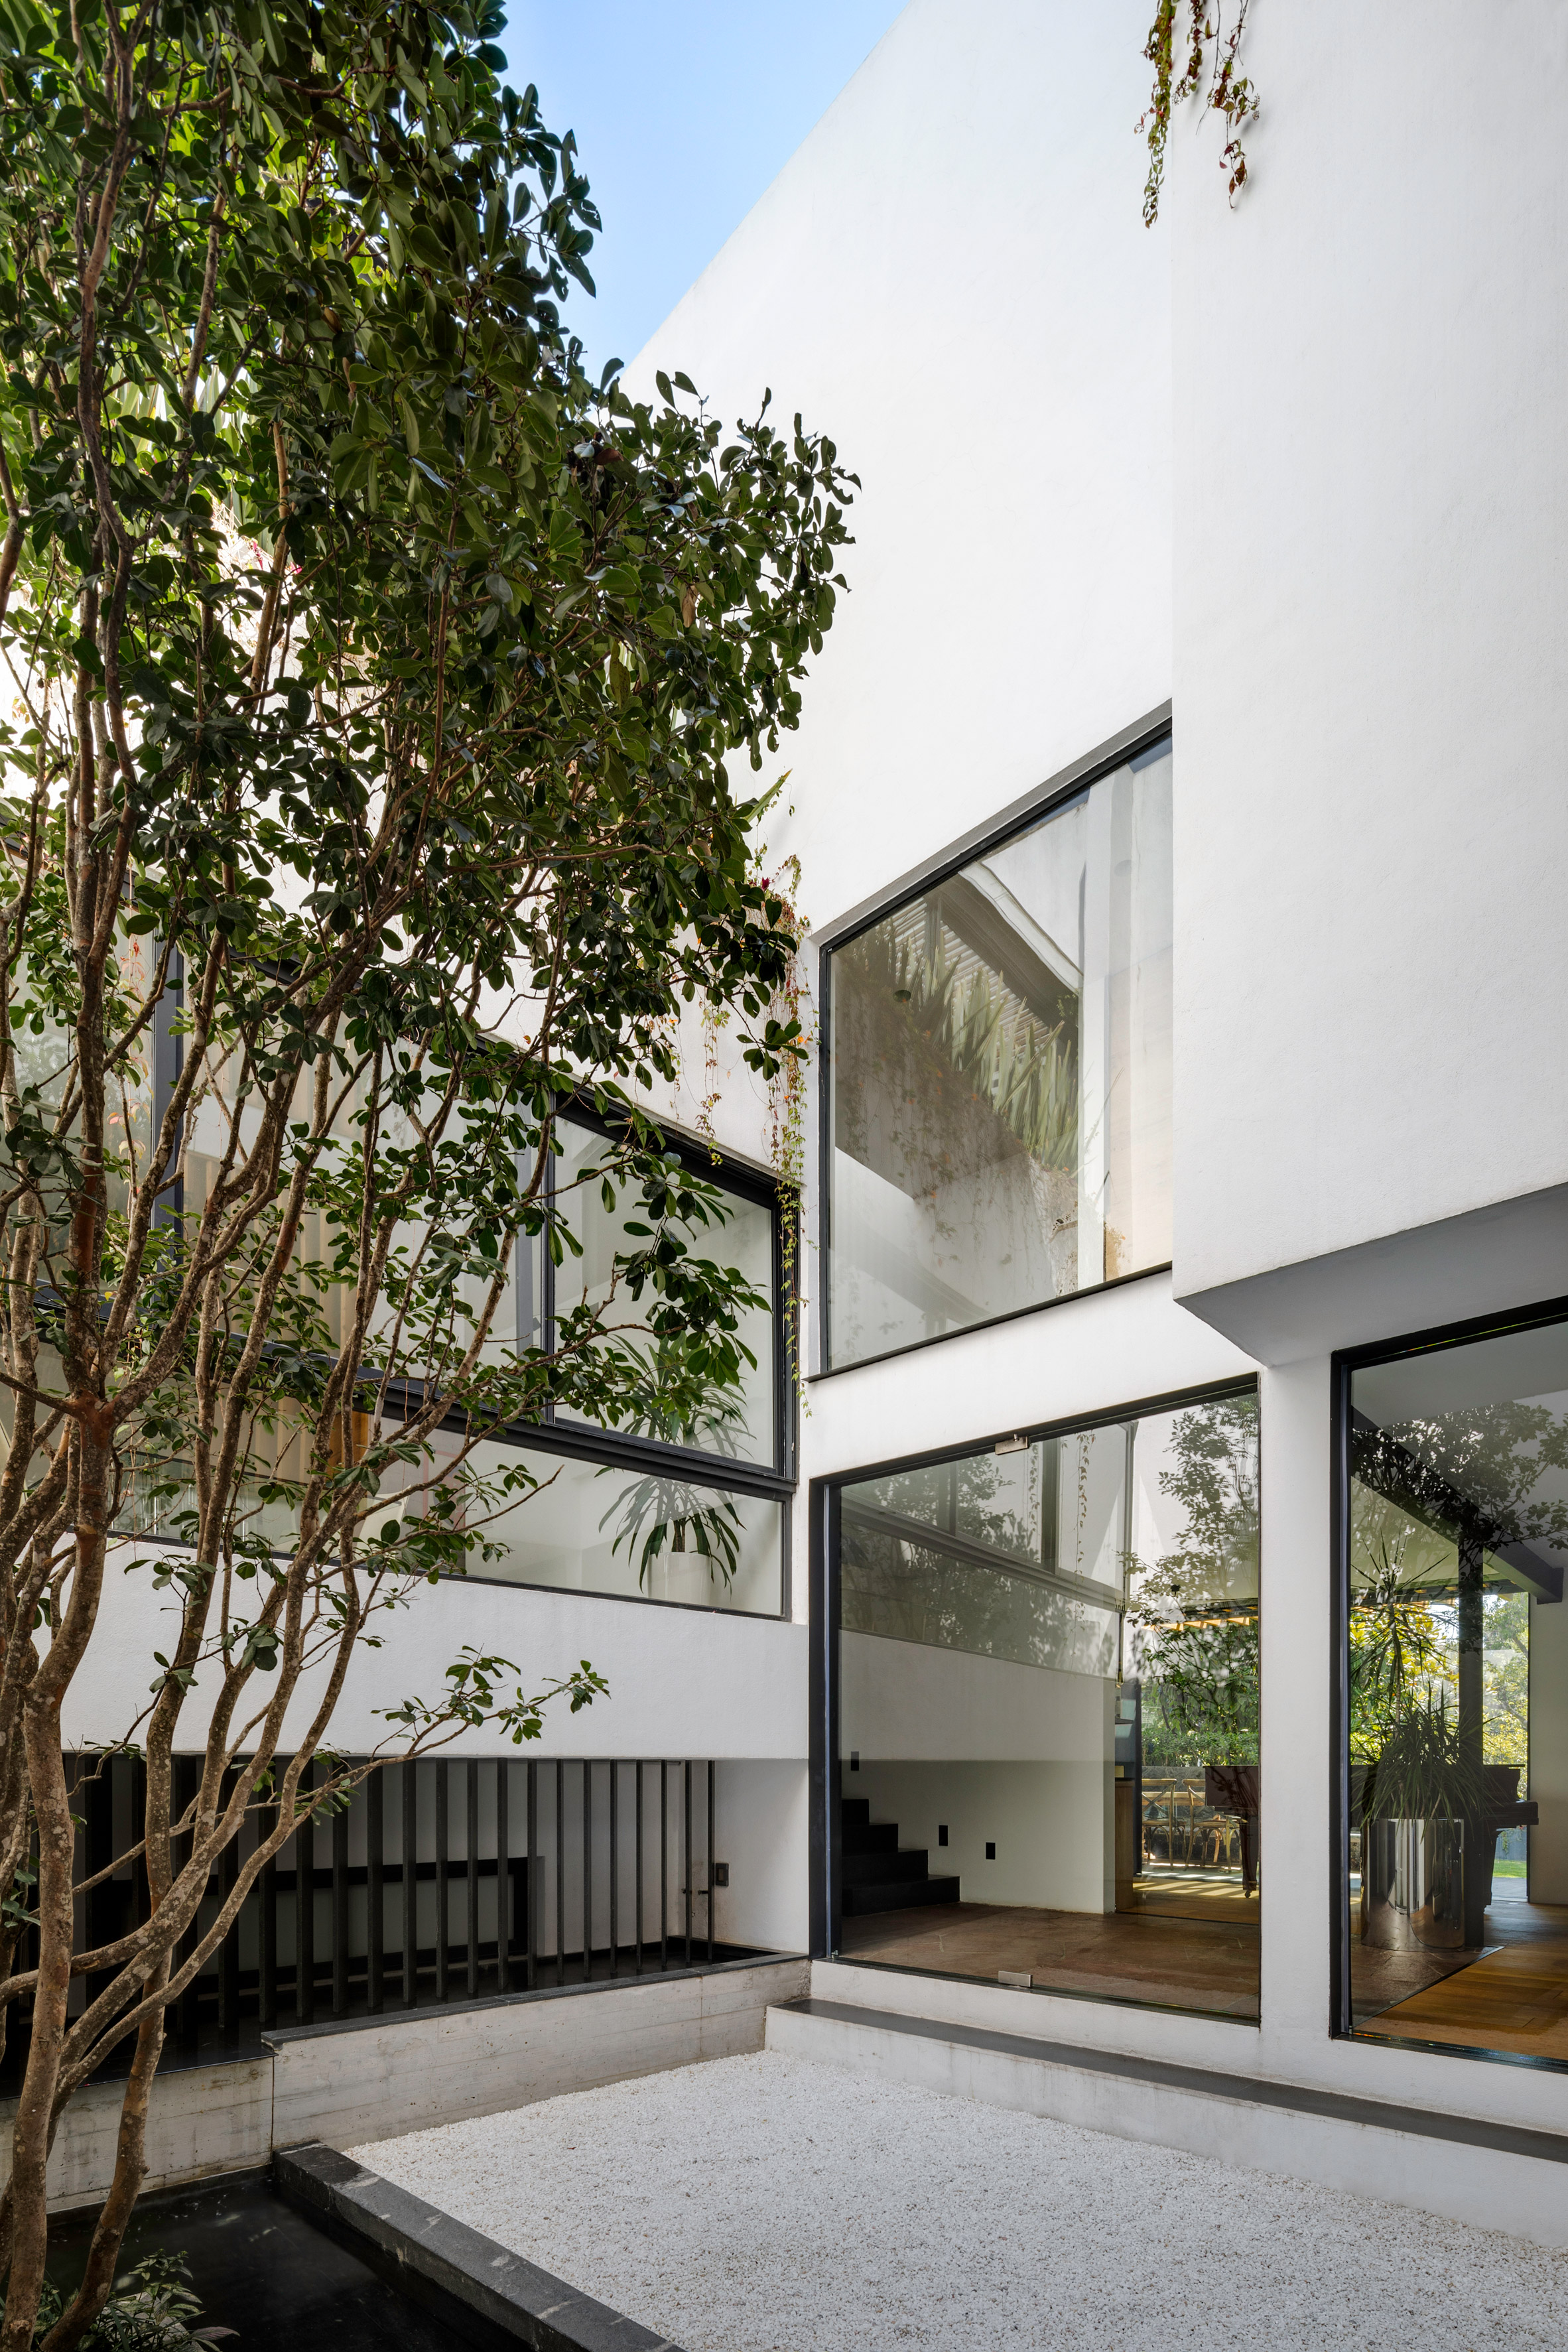 Cachai House by Taller Paralelo